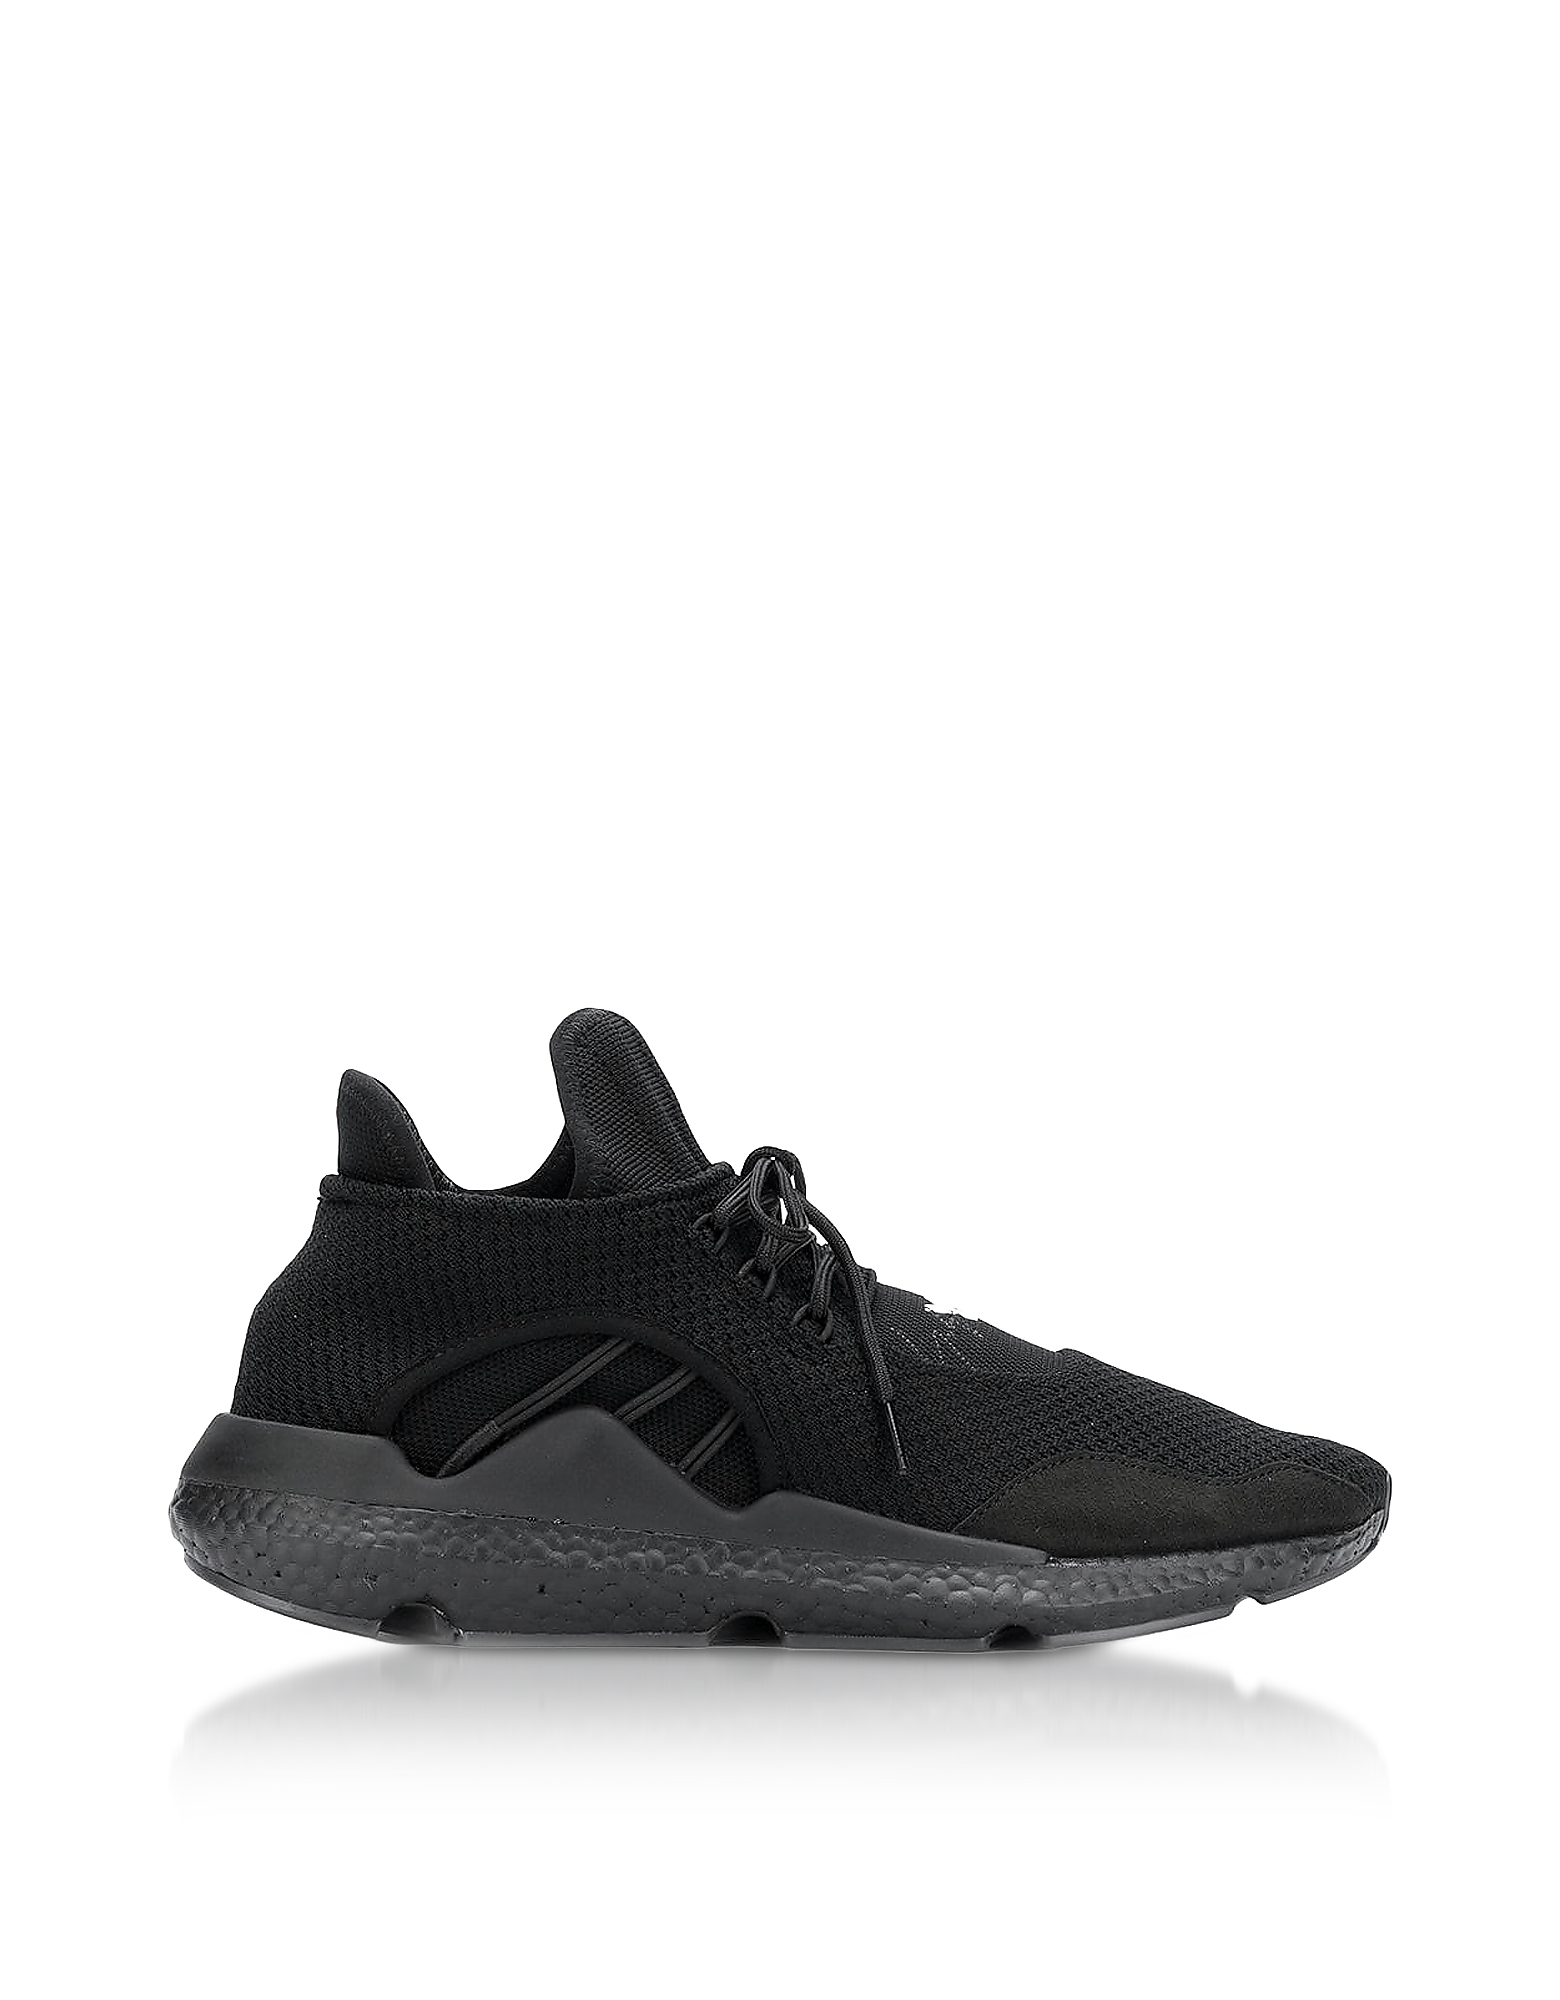 Y-3 Shoes, Black Saikou Men's Sneakers